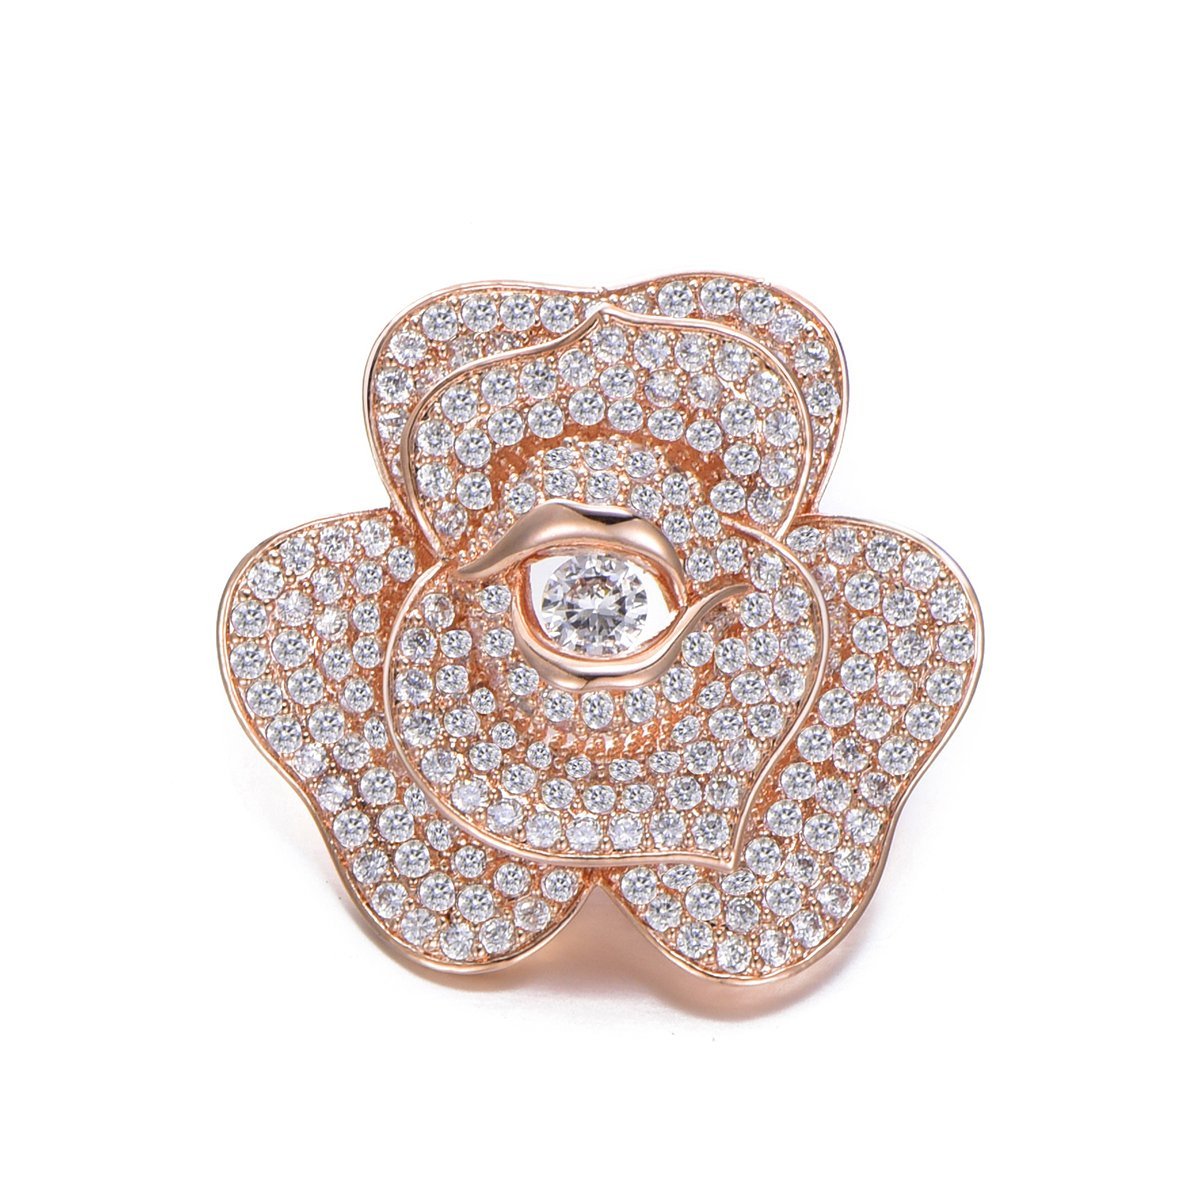 Flower Brooch Pins for Women,Dazzling Rhinestone Brooch for Brides Copper Vintage Crystal Brooch Girls CZ Brooch for Wedding,Party (Rose Gold Flower)